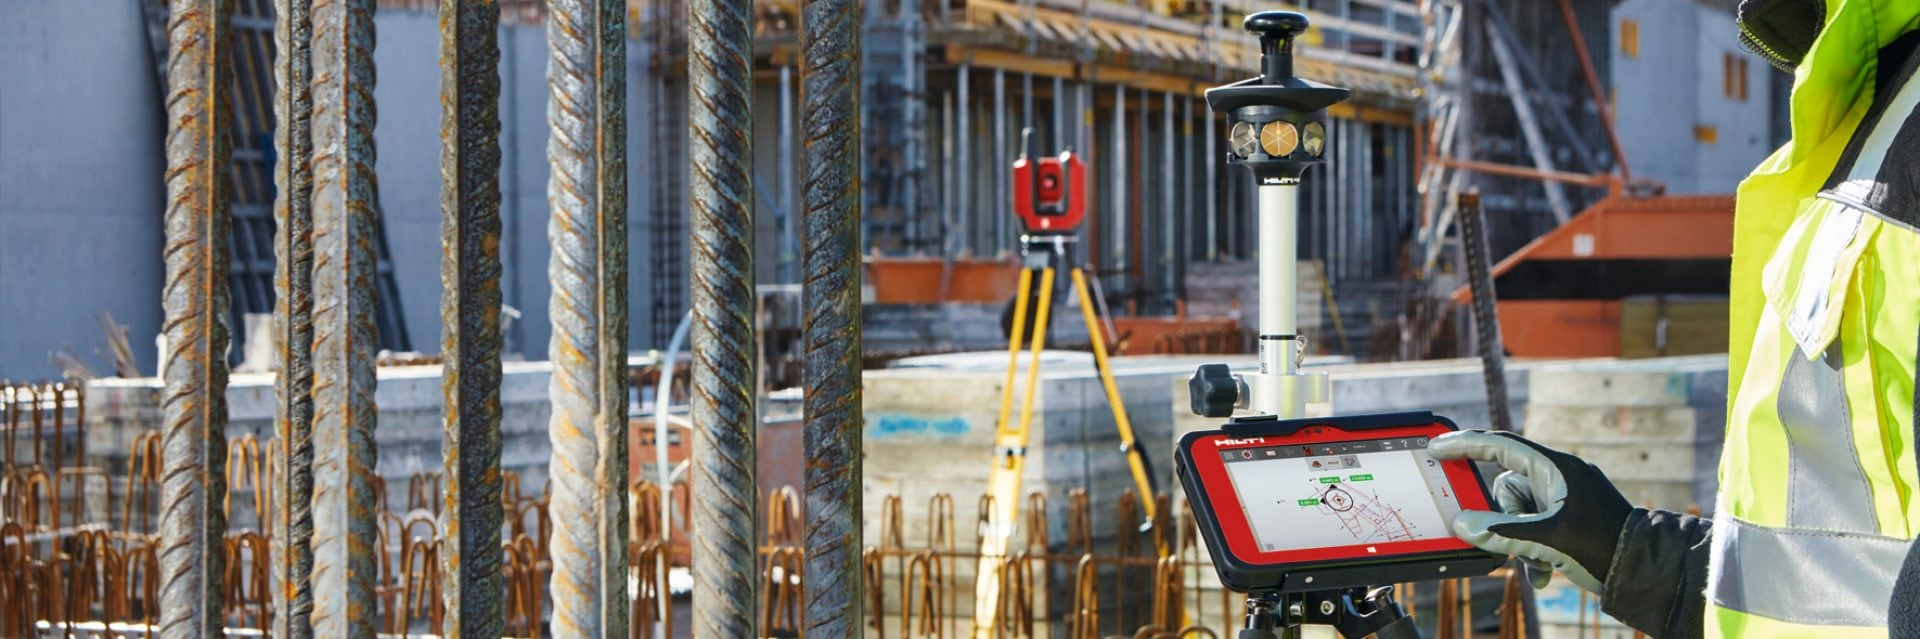 Hilti layout tools and total stations for construction sites